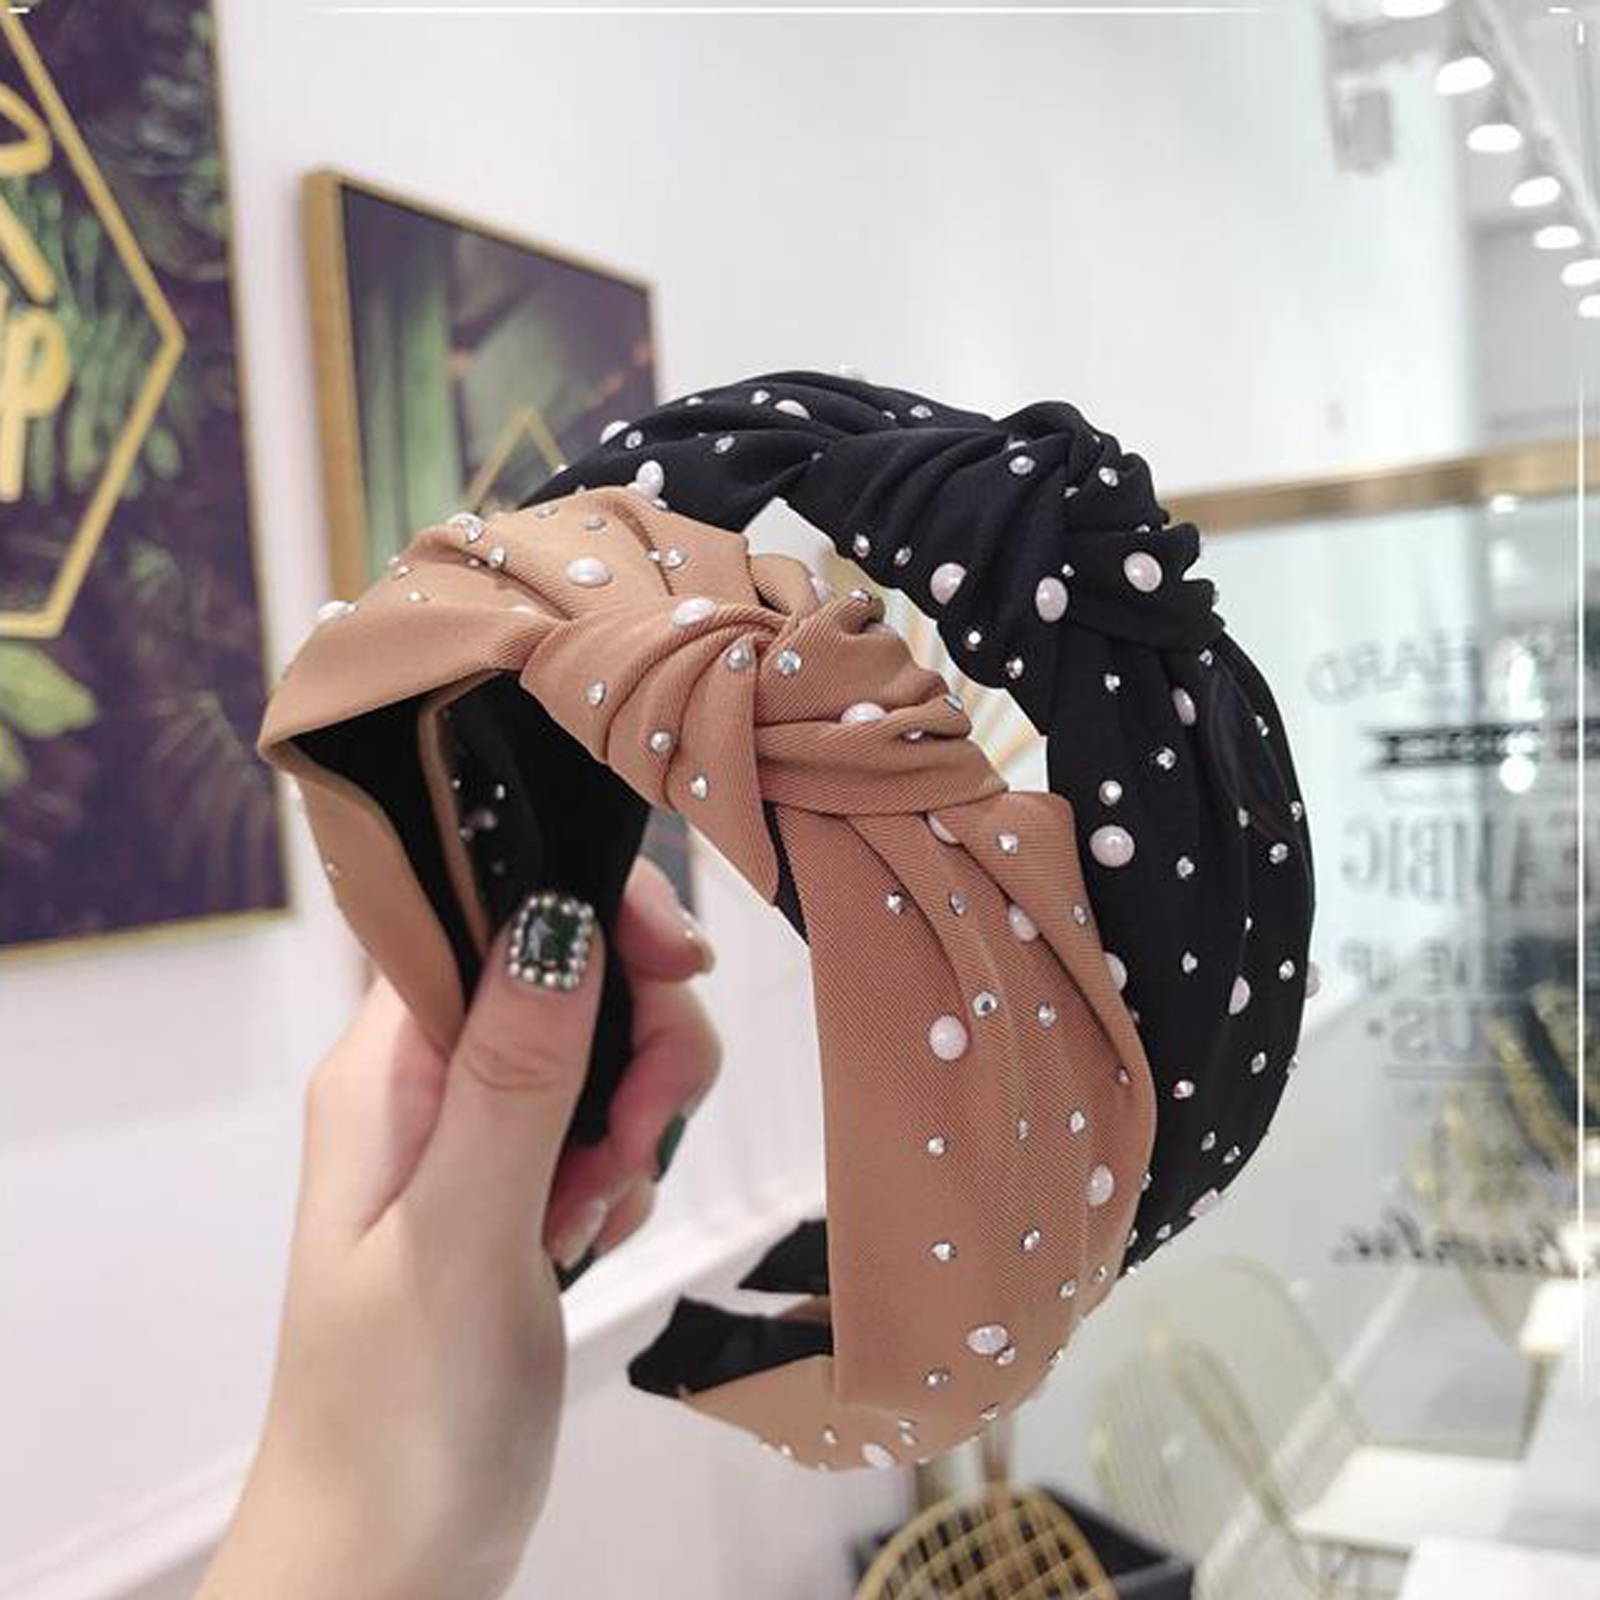 New 2019 Fashion Girls Headband Handmade Shining Pearls Rhinestone Ornament Hairband Women Middle Knot Turban Hair Accessories